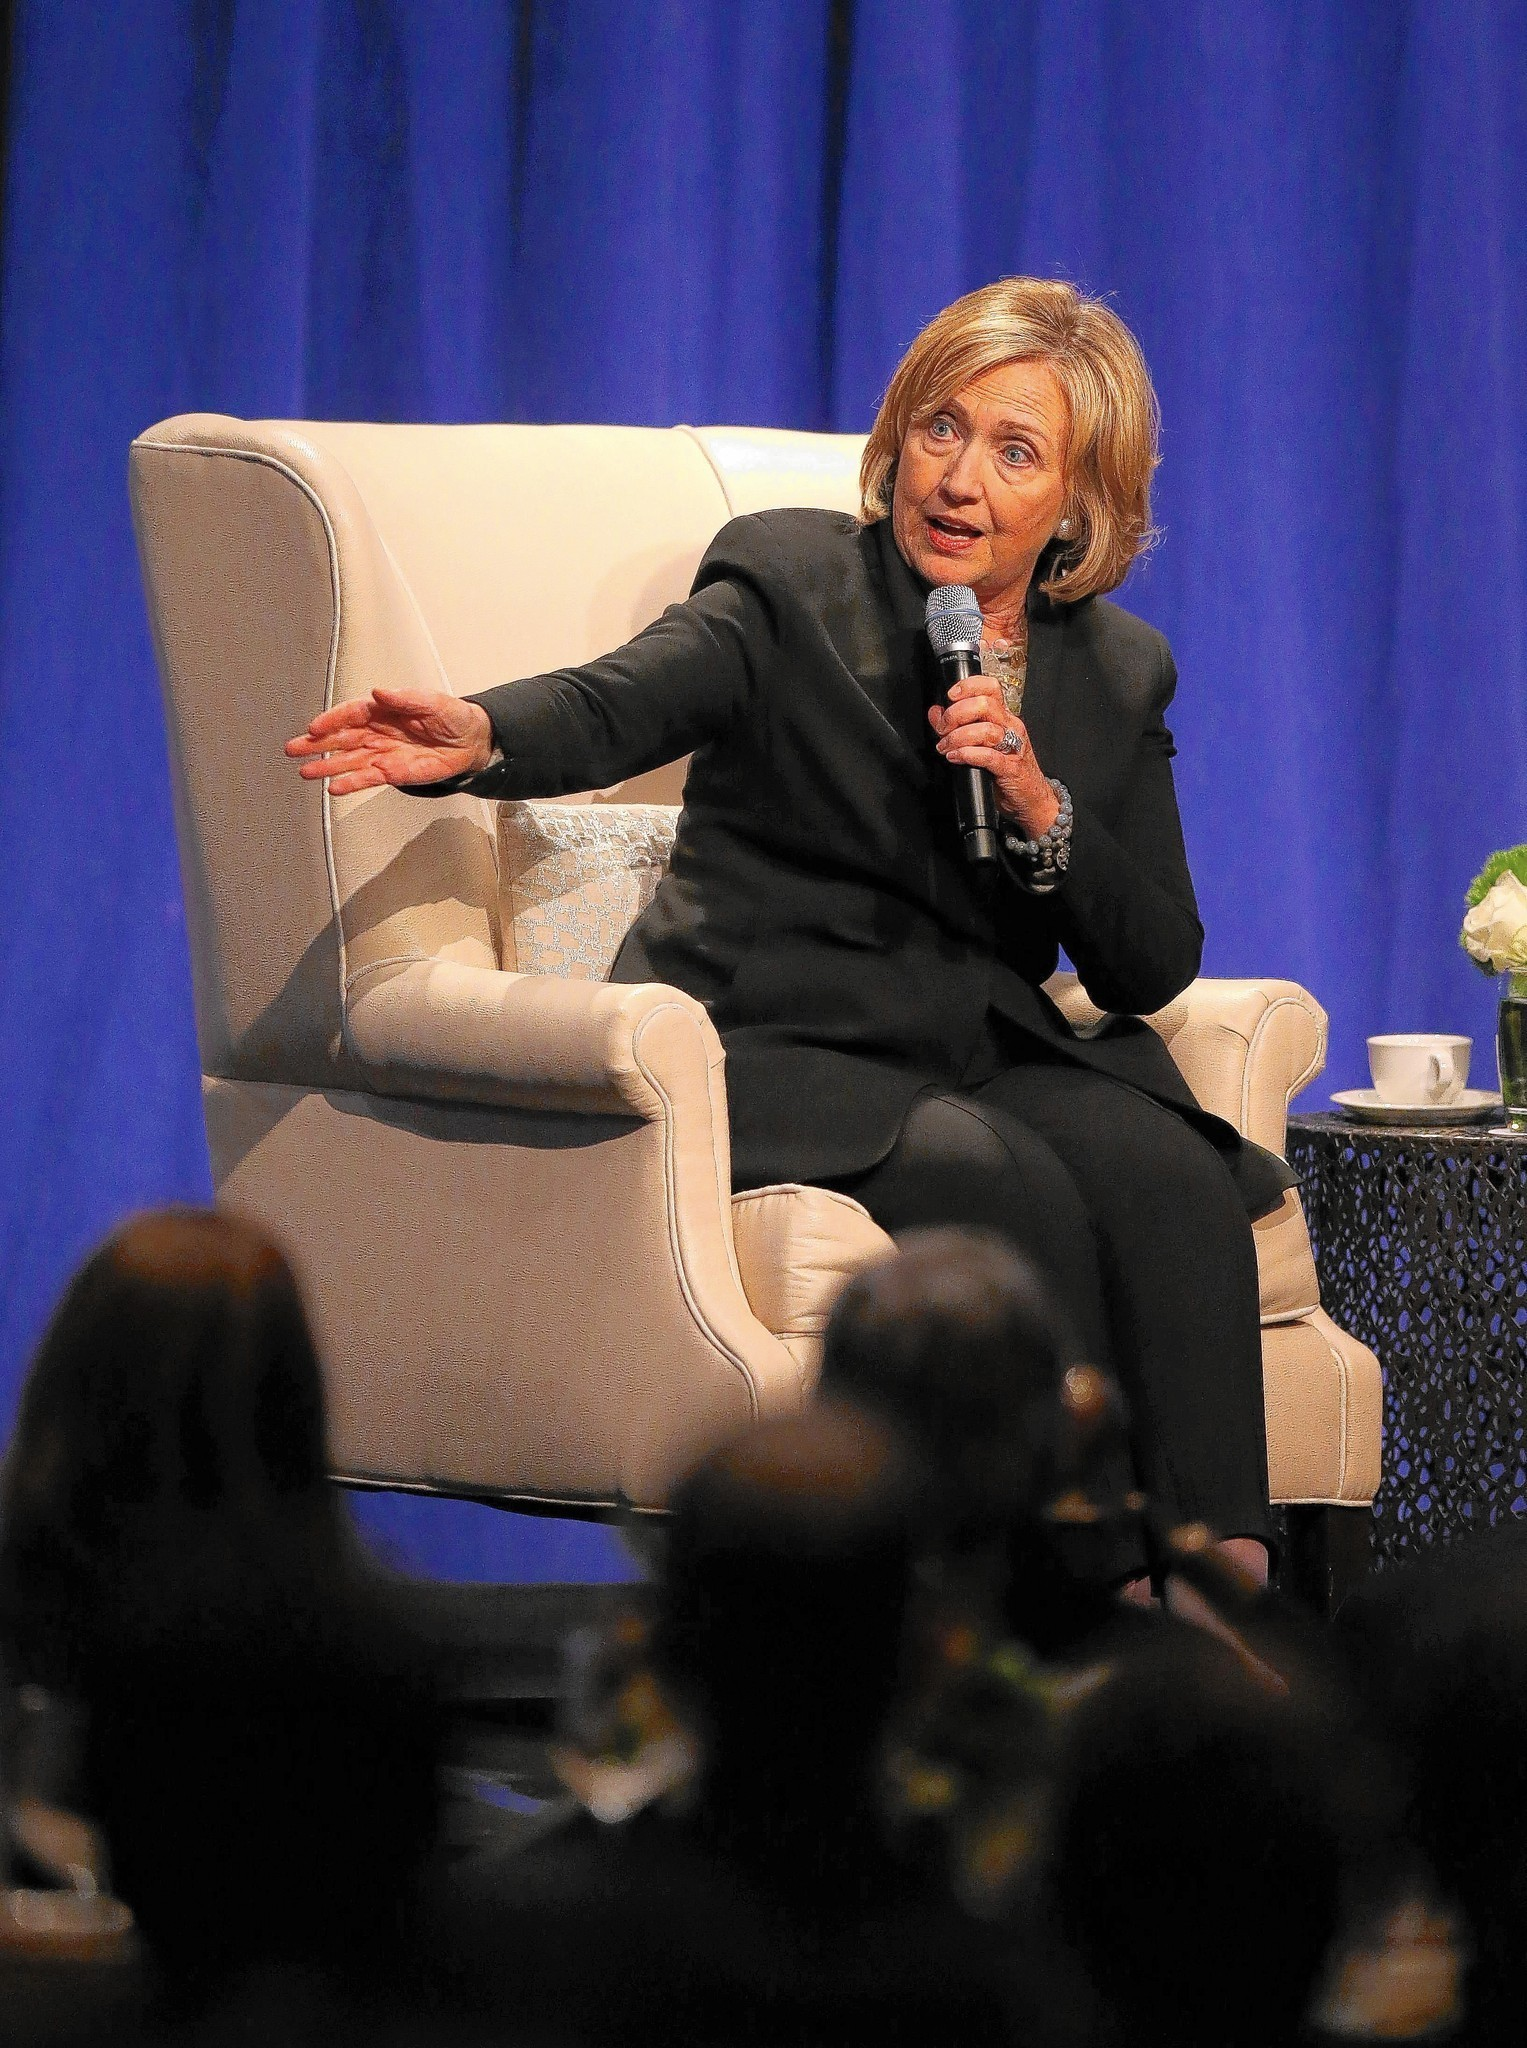 Hillary Clinton 39 S Campaign For Compromise Chicago Tribune